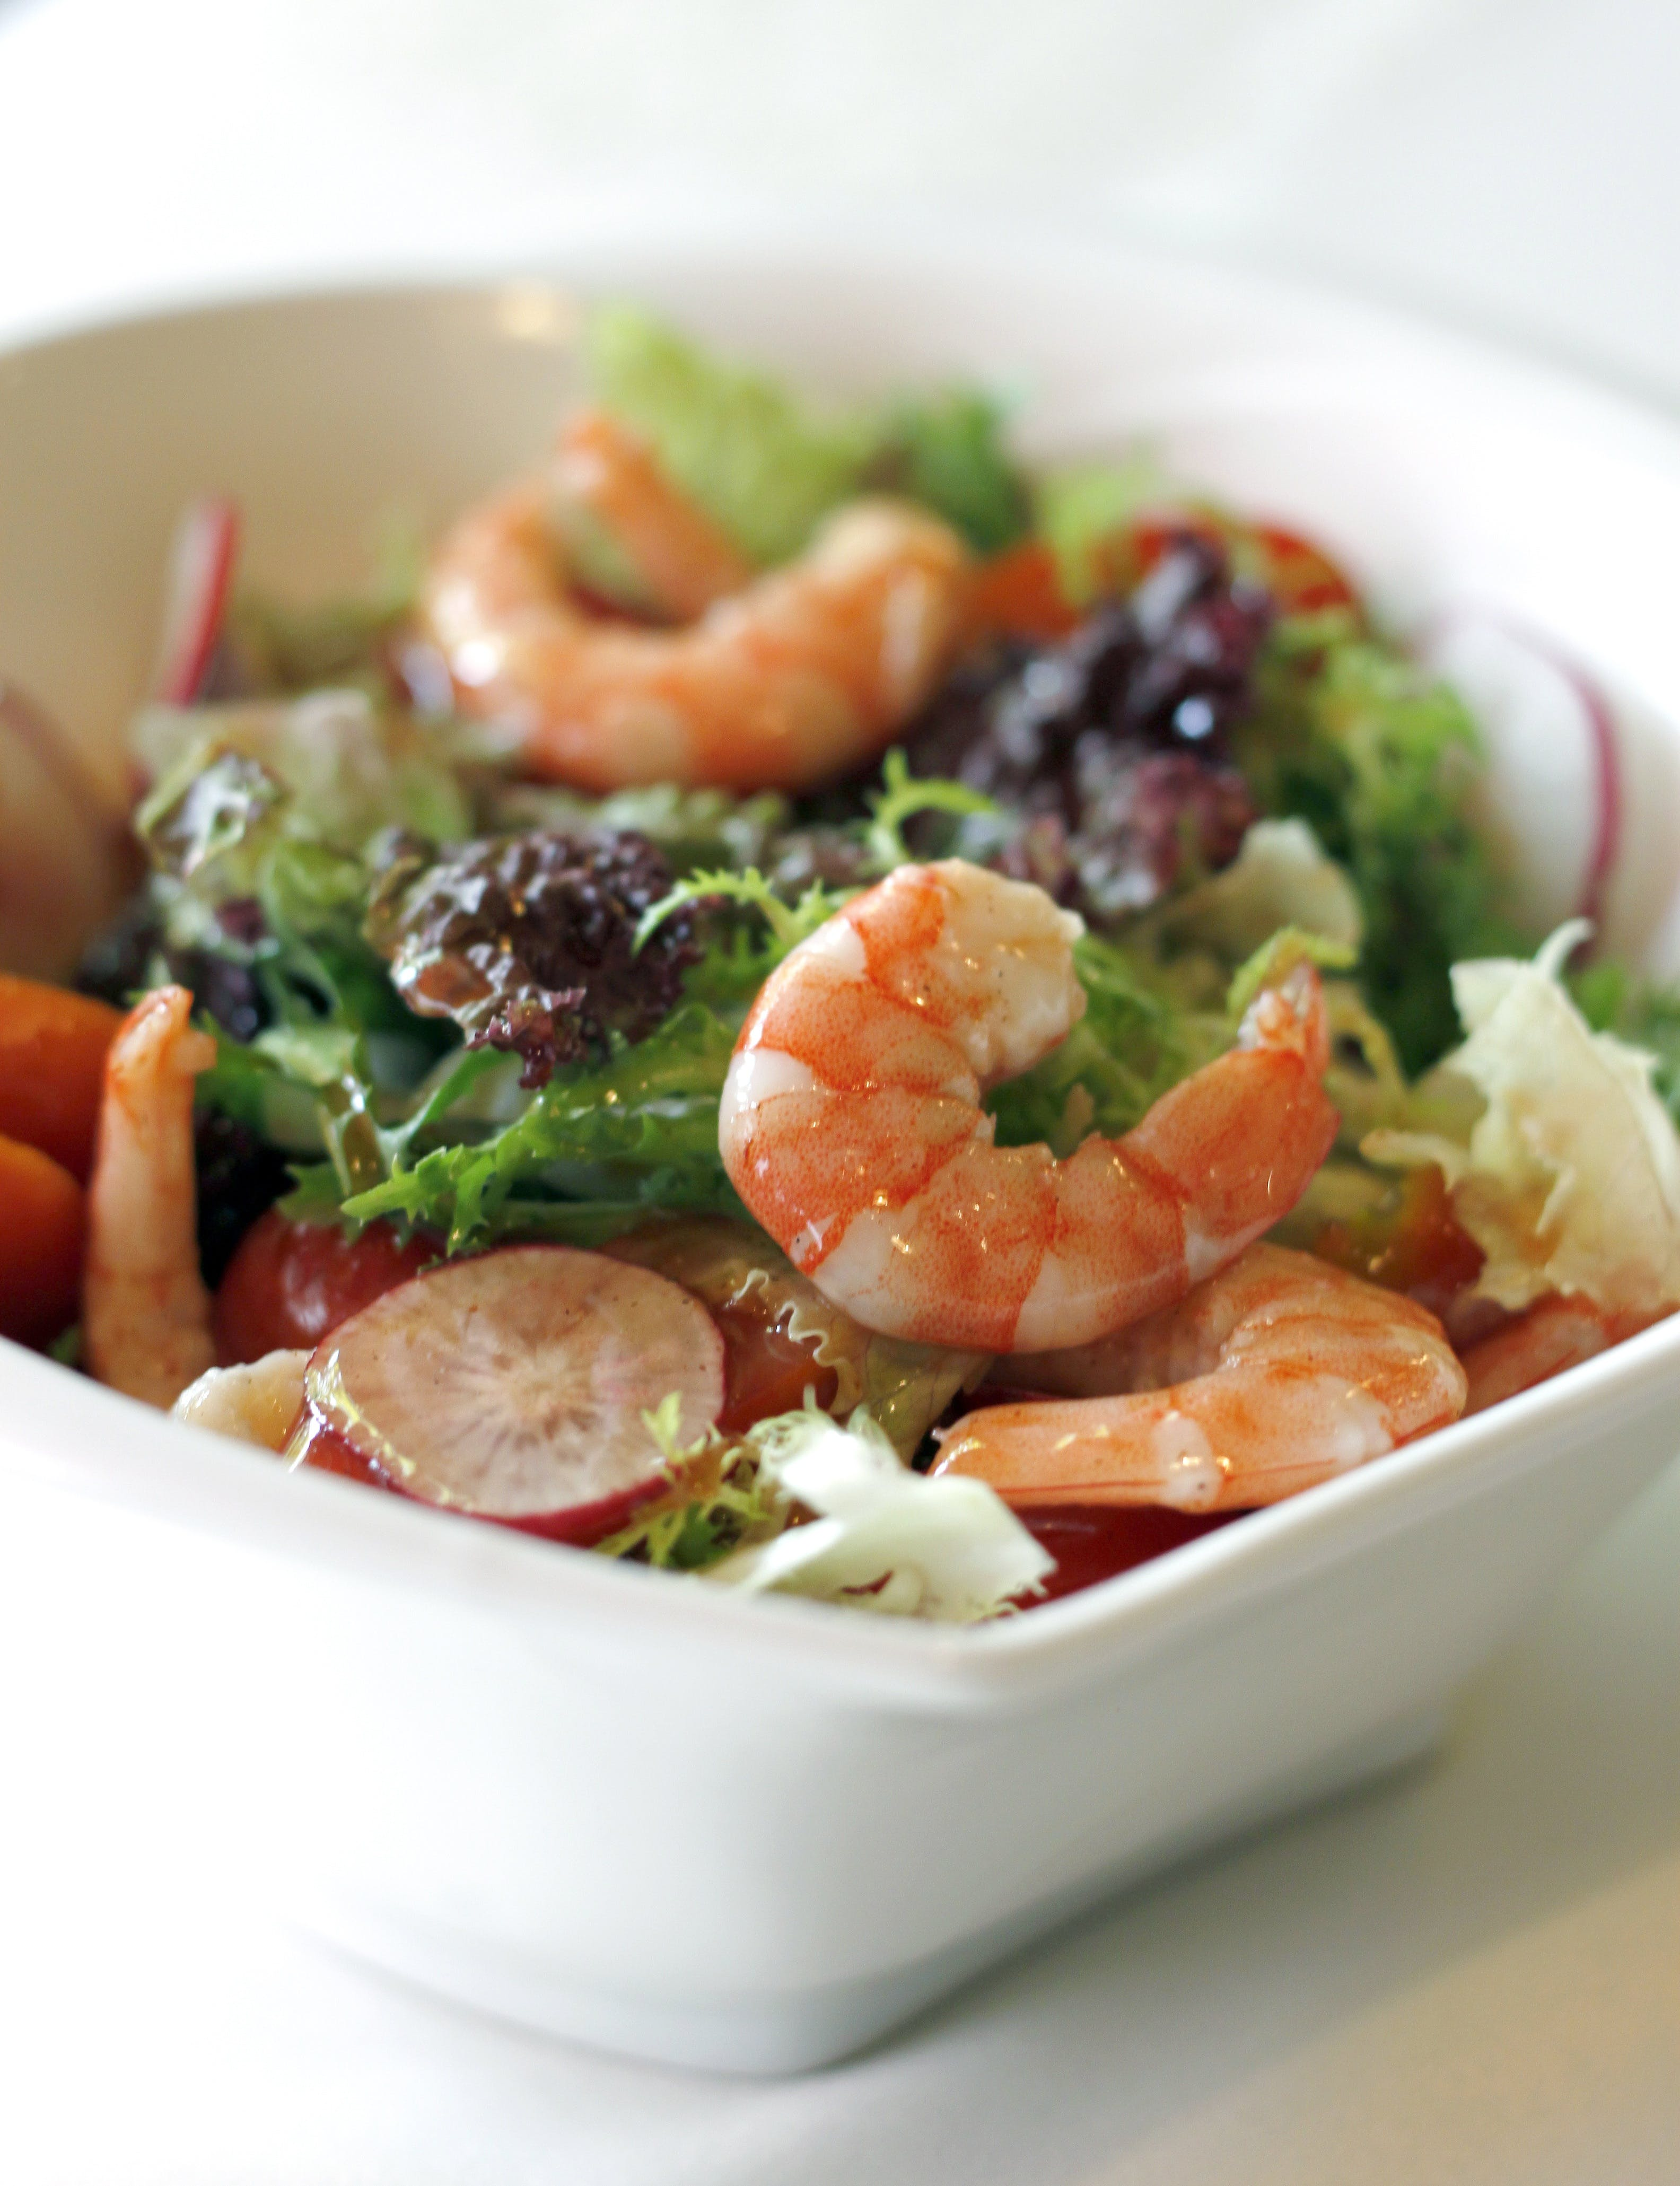 Shrimp and Vegetable Salad